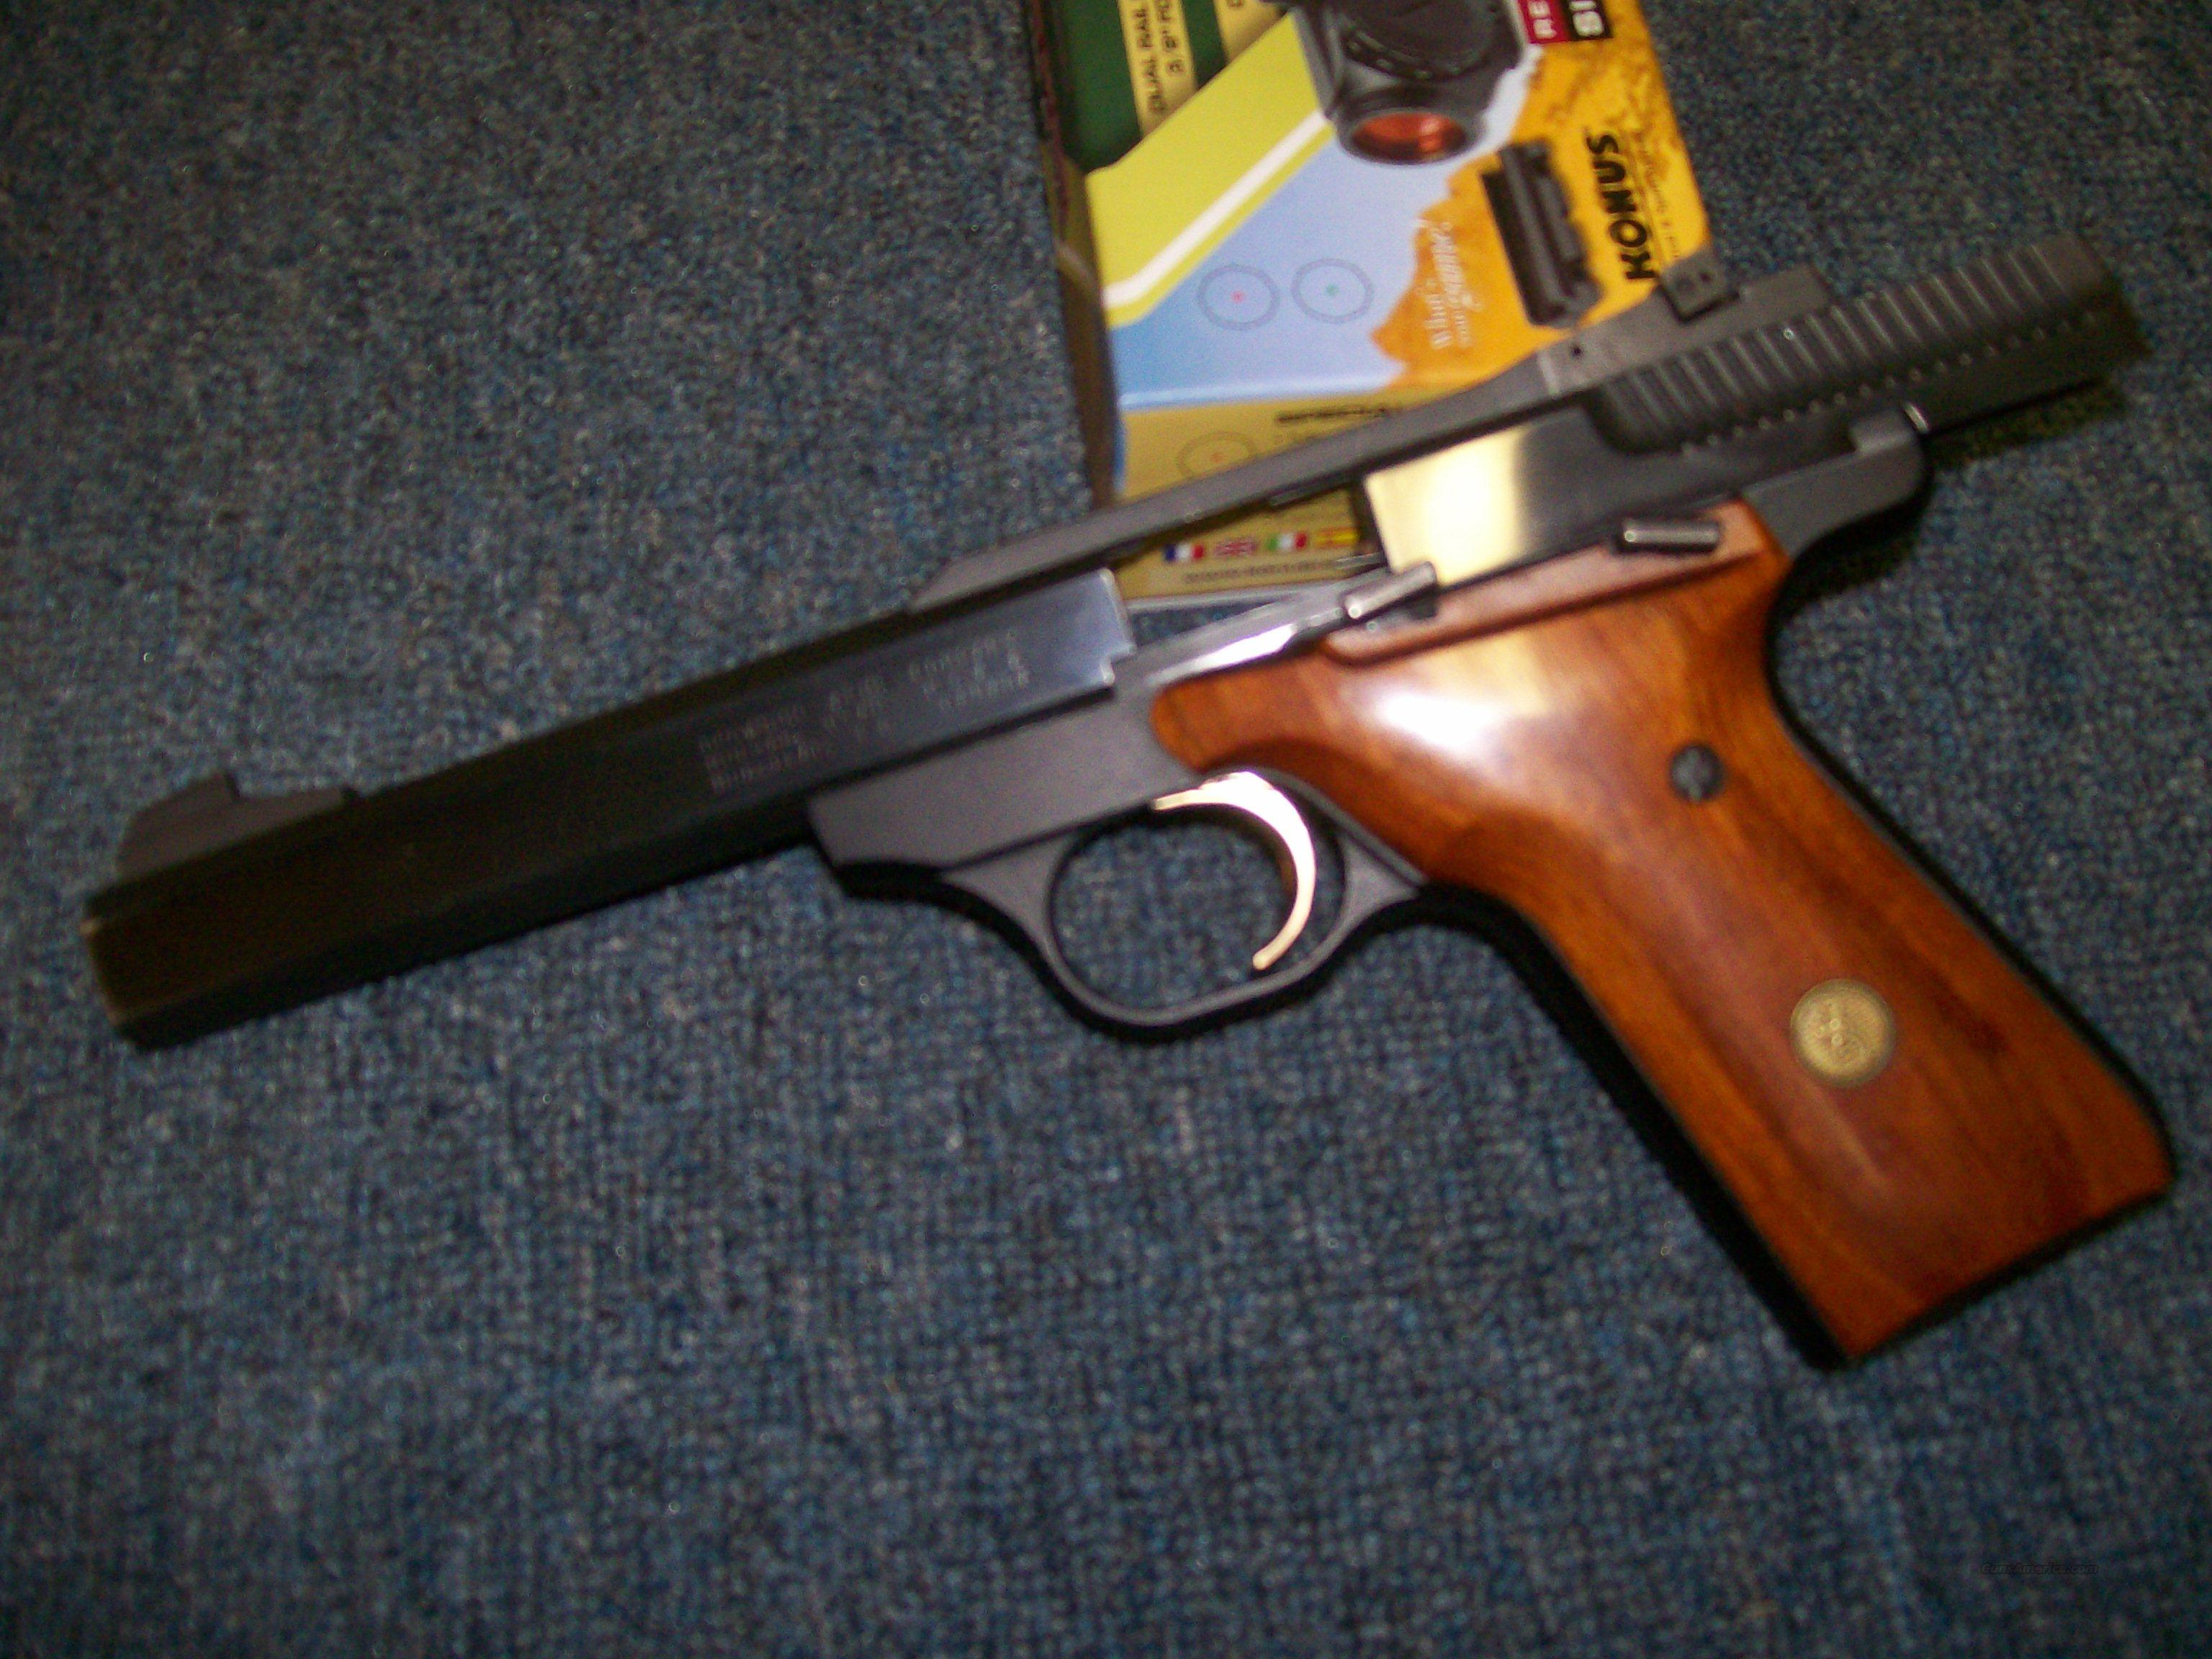 Browning 22lr Challenger Pistol  Guns > Pistols > Browning Pistols > Other Autos